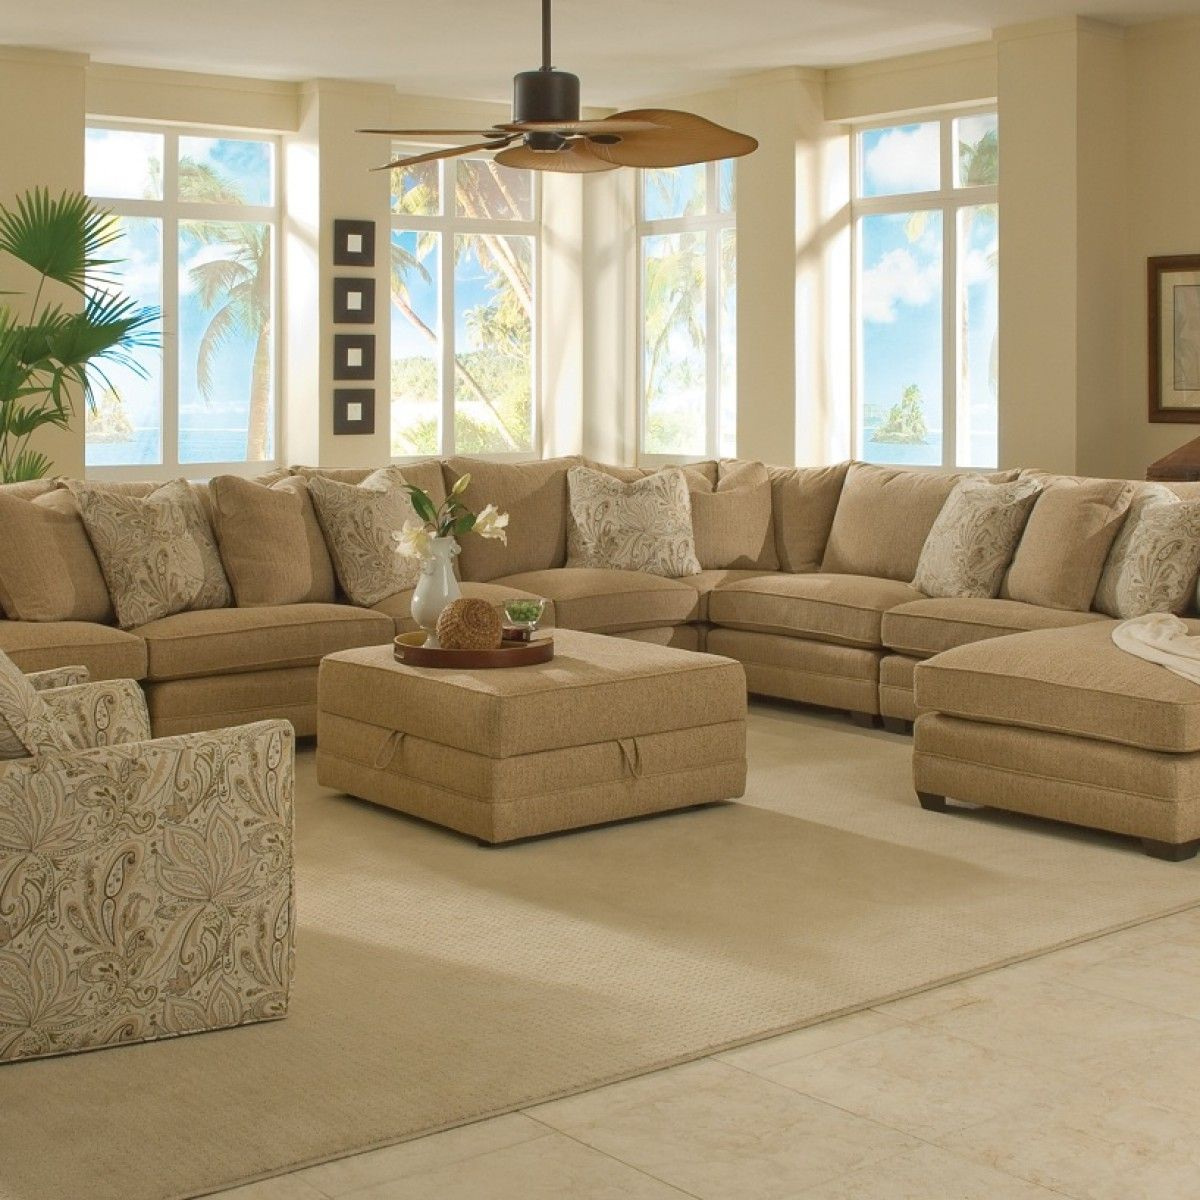 Magnificent Large Sectional Sofas Family Room Pinterest Large Sectional Sectional Sofa